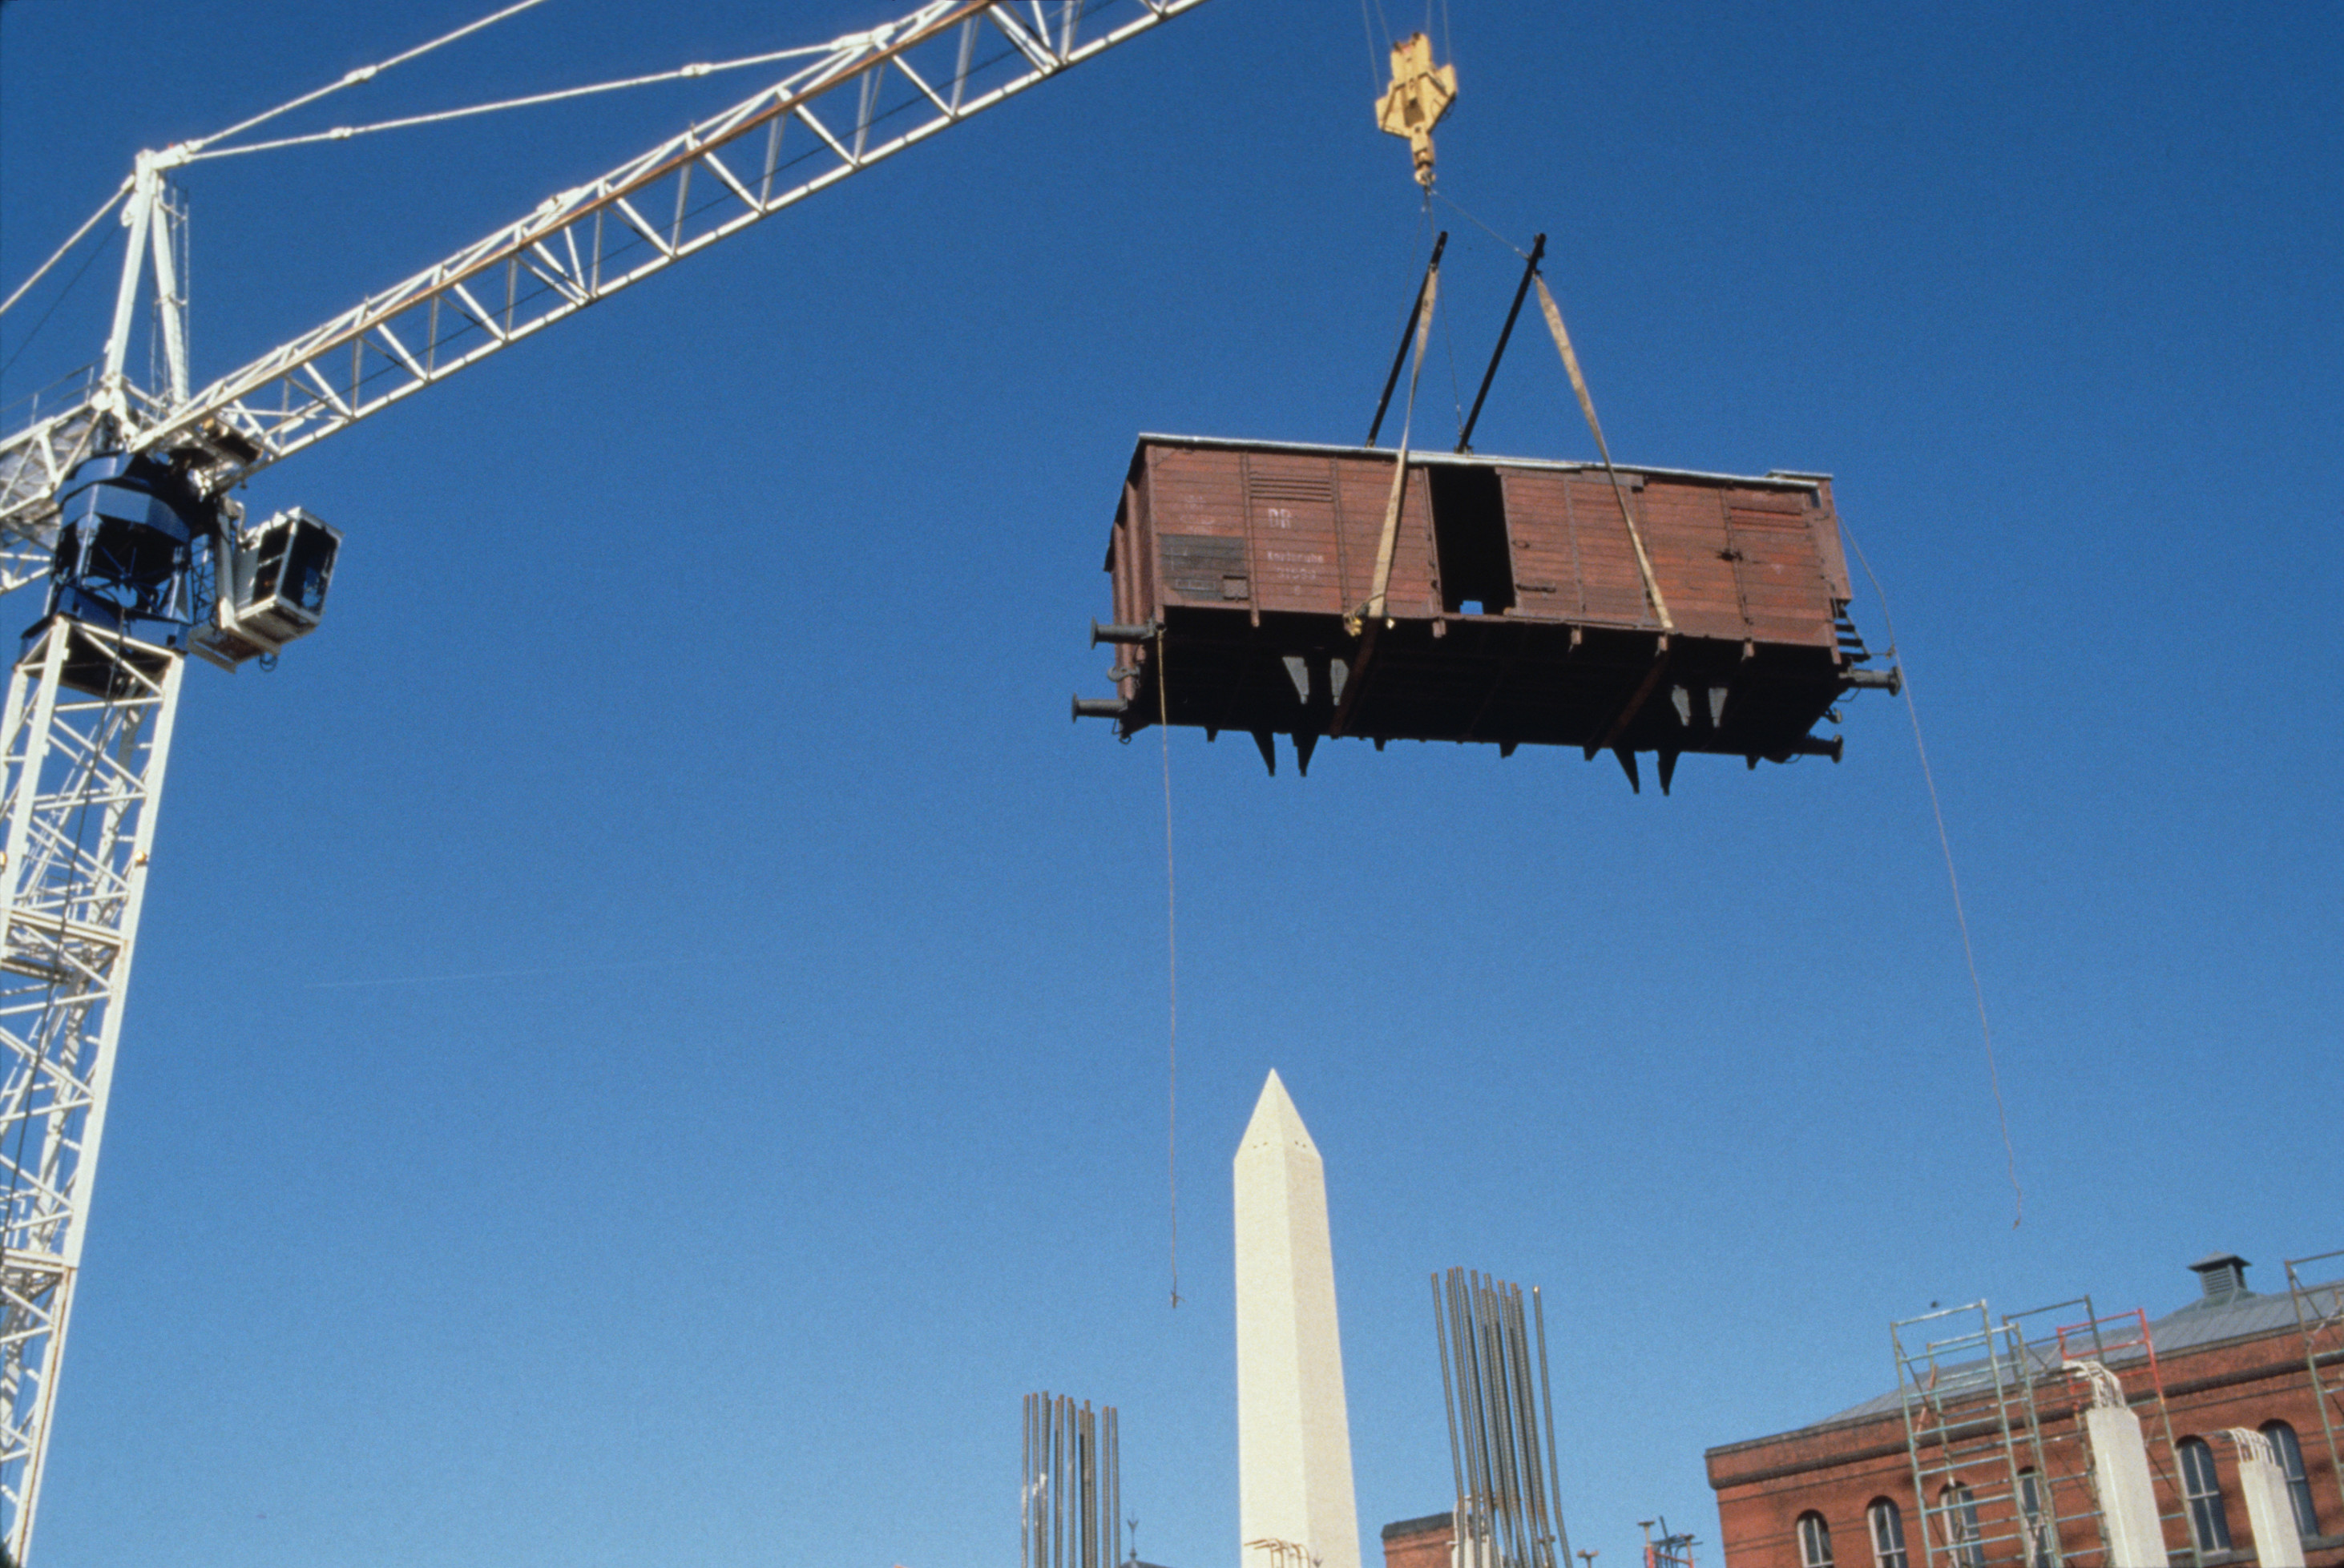 Installation of the railcar at the construction site of the U.S. Holocaust Memorial Museum.